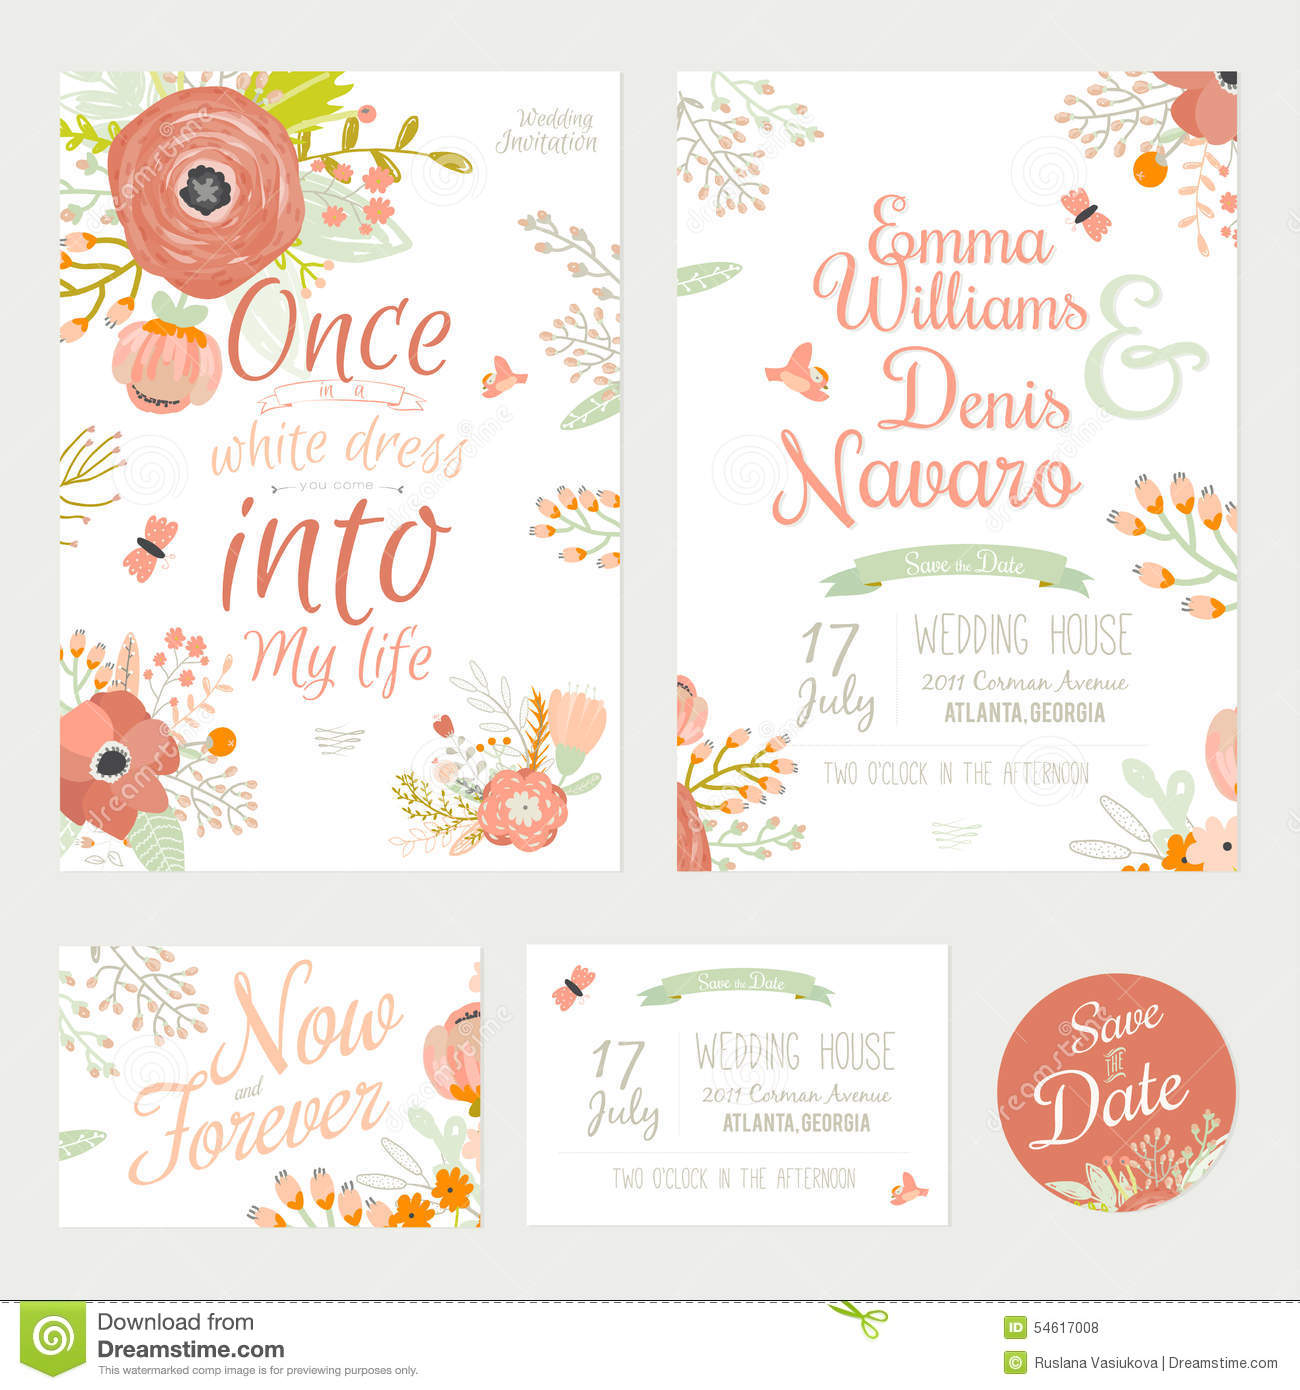 Vintage romantic floral save the date invitation stock for Free vintage save the date templates